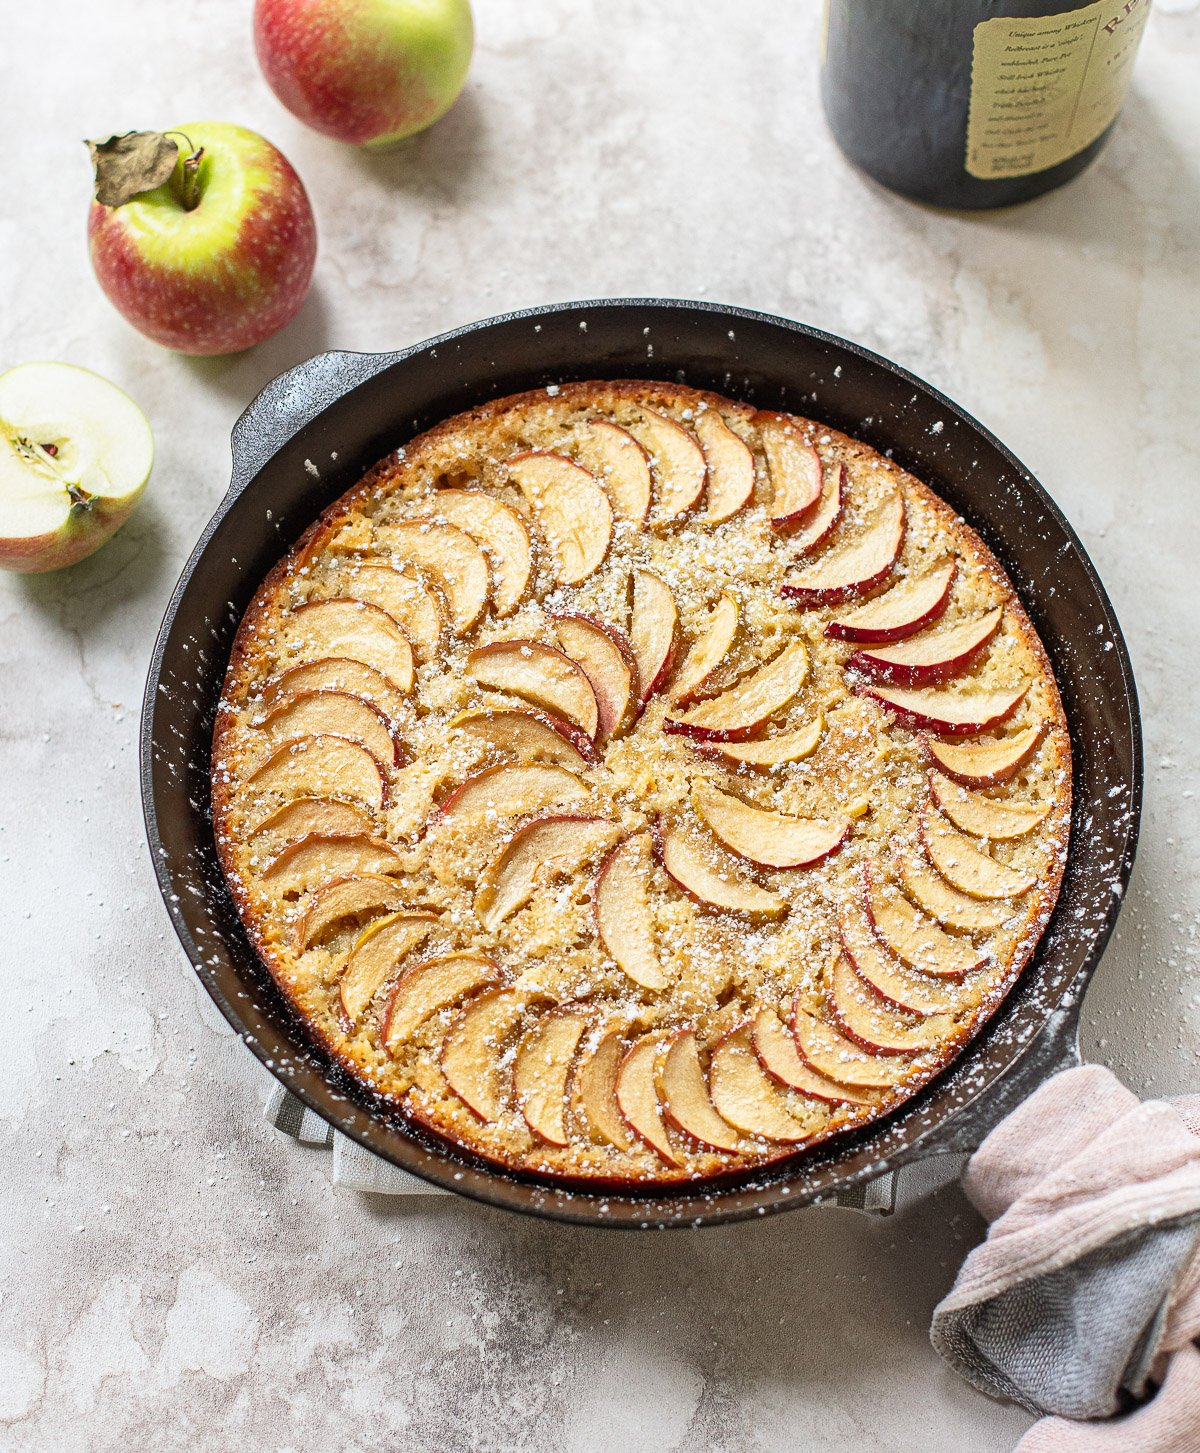 Photo of a black cast iron skillet with baked French apple cake, with sliced apples and powdered sugar on top.